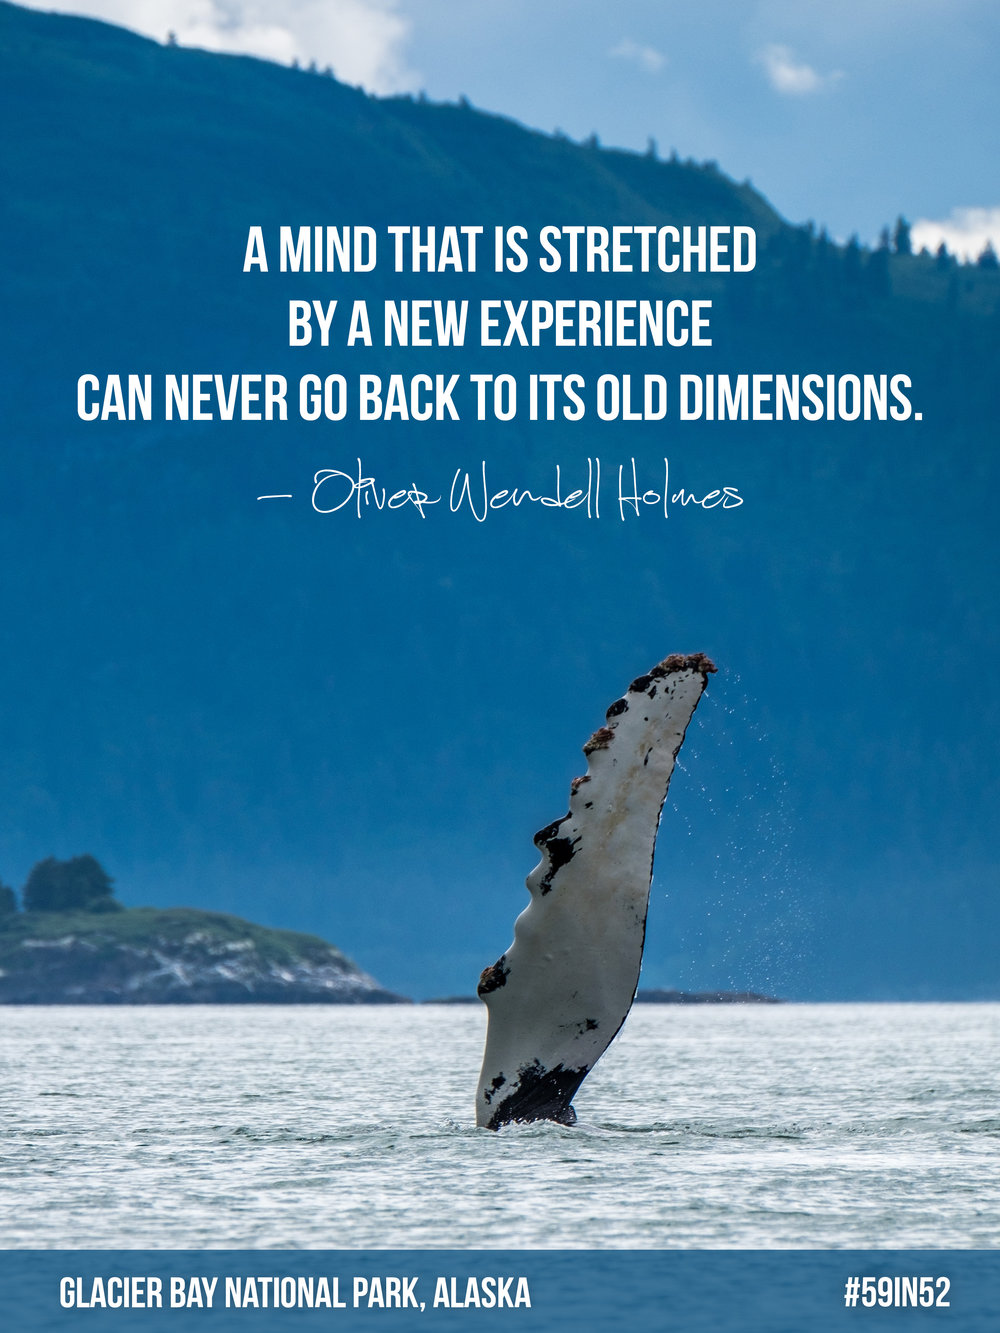 """A mind that is stretched by a new experience can never go back to its old dimensions."" - Oliver Wendell Holmes"